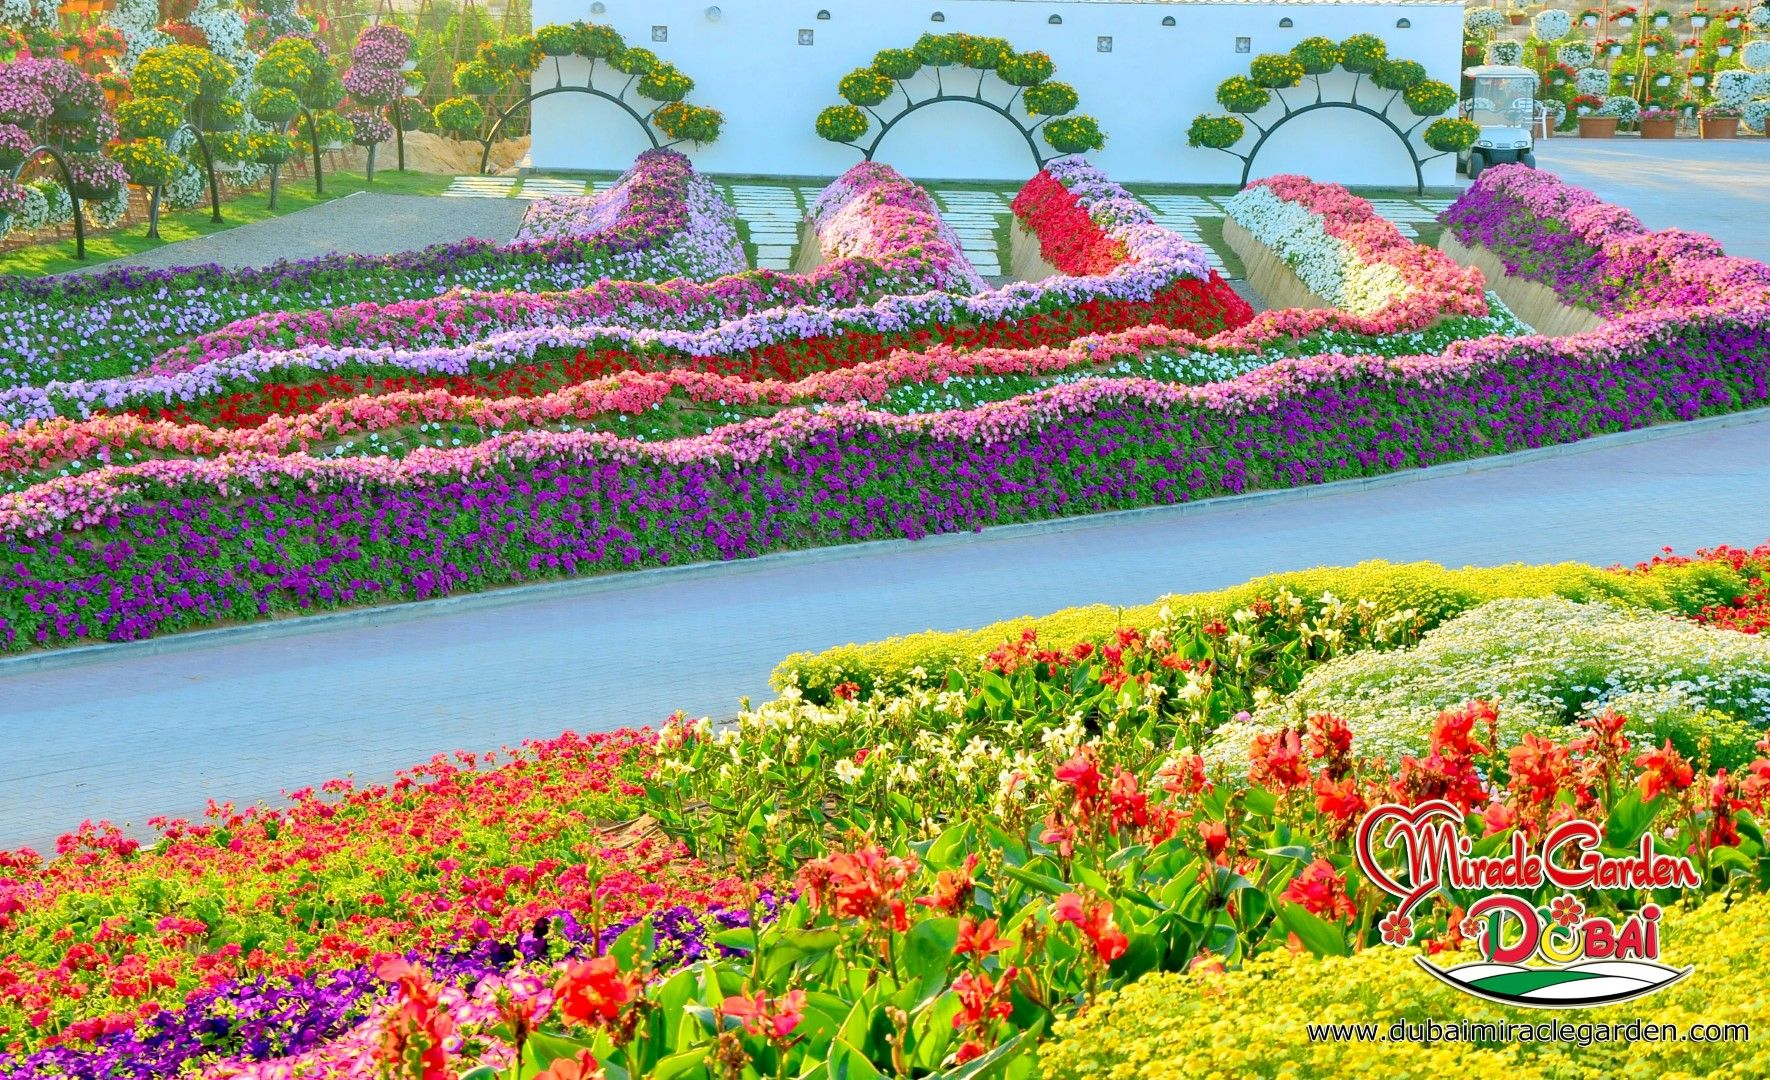 17 Best 1000 images about Dubai Miracle Garden on Pinterest Gardens